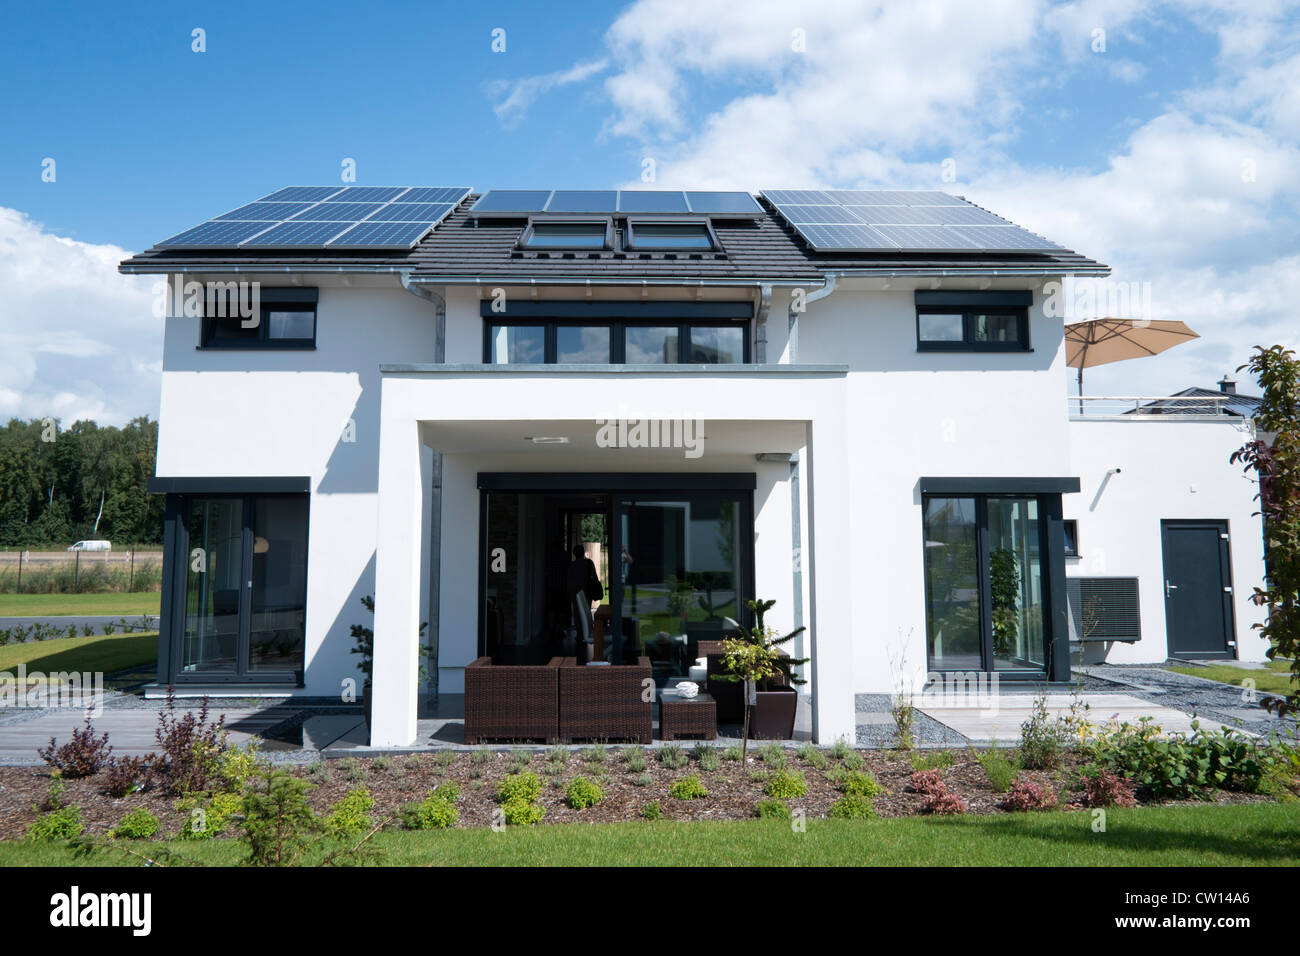 Modern Highly Energy Efficient Family House With Solar